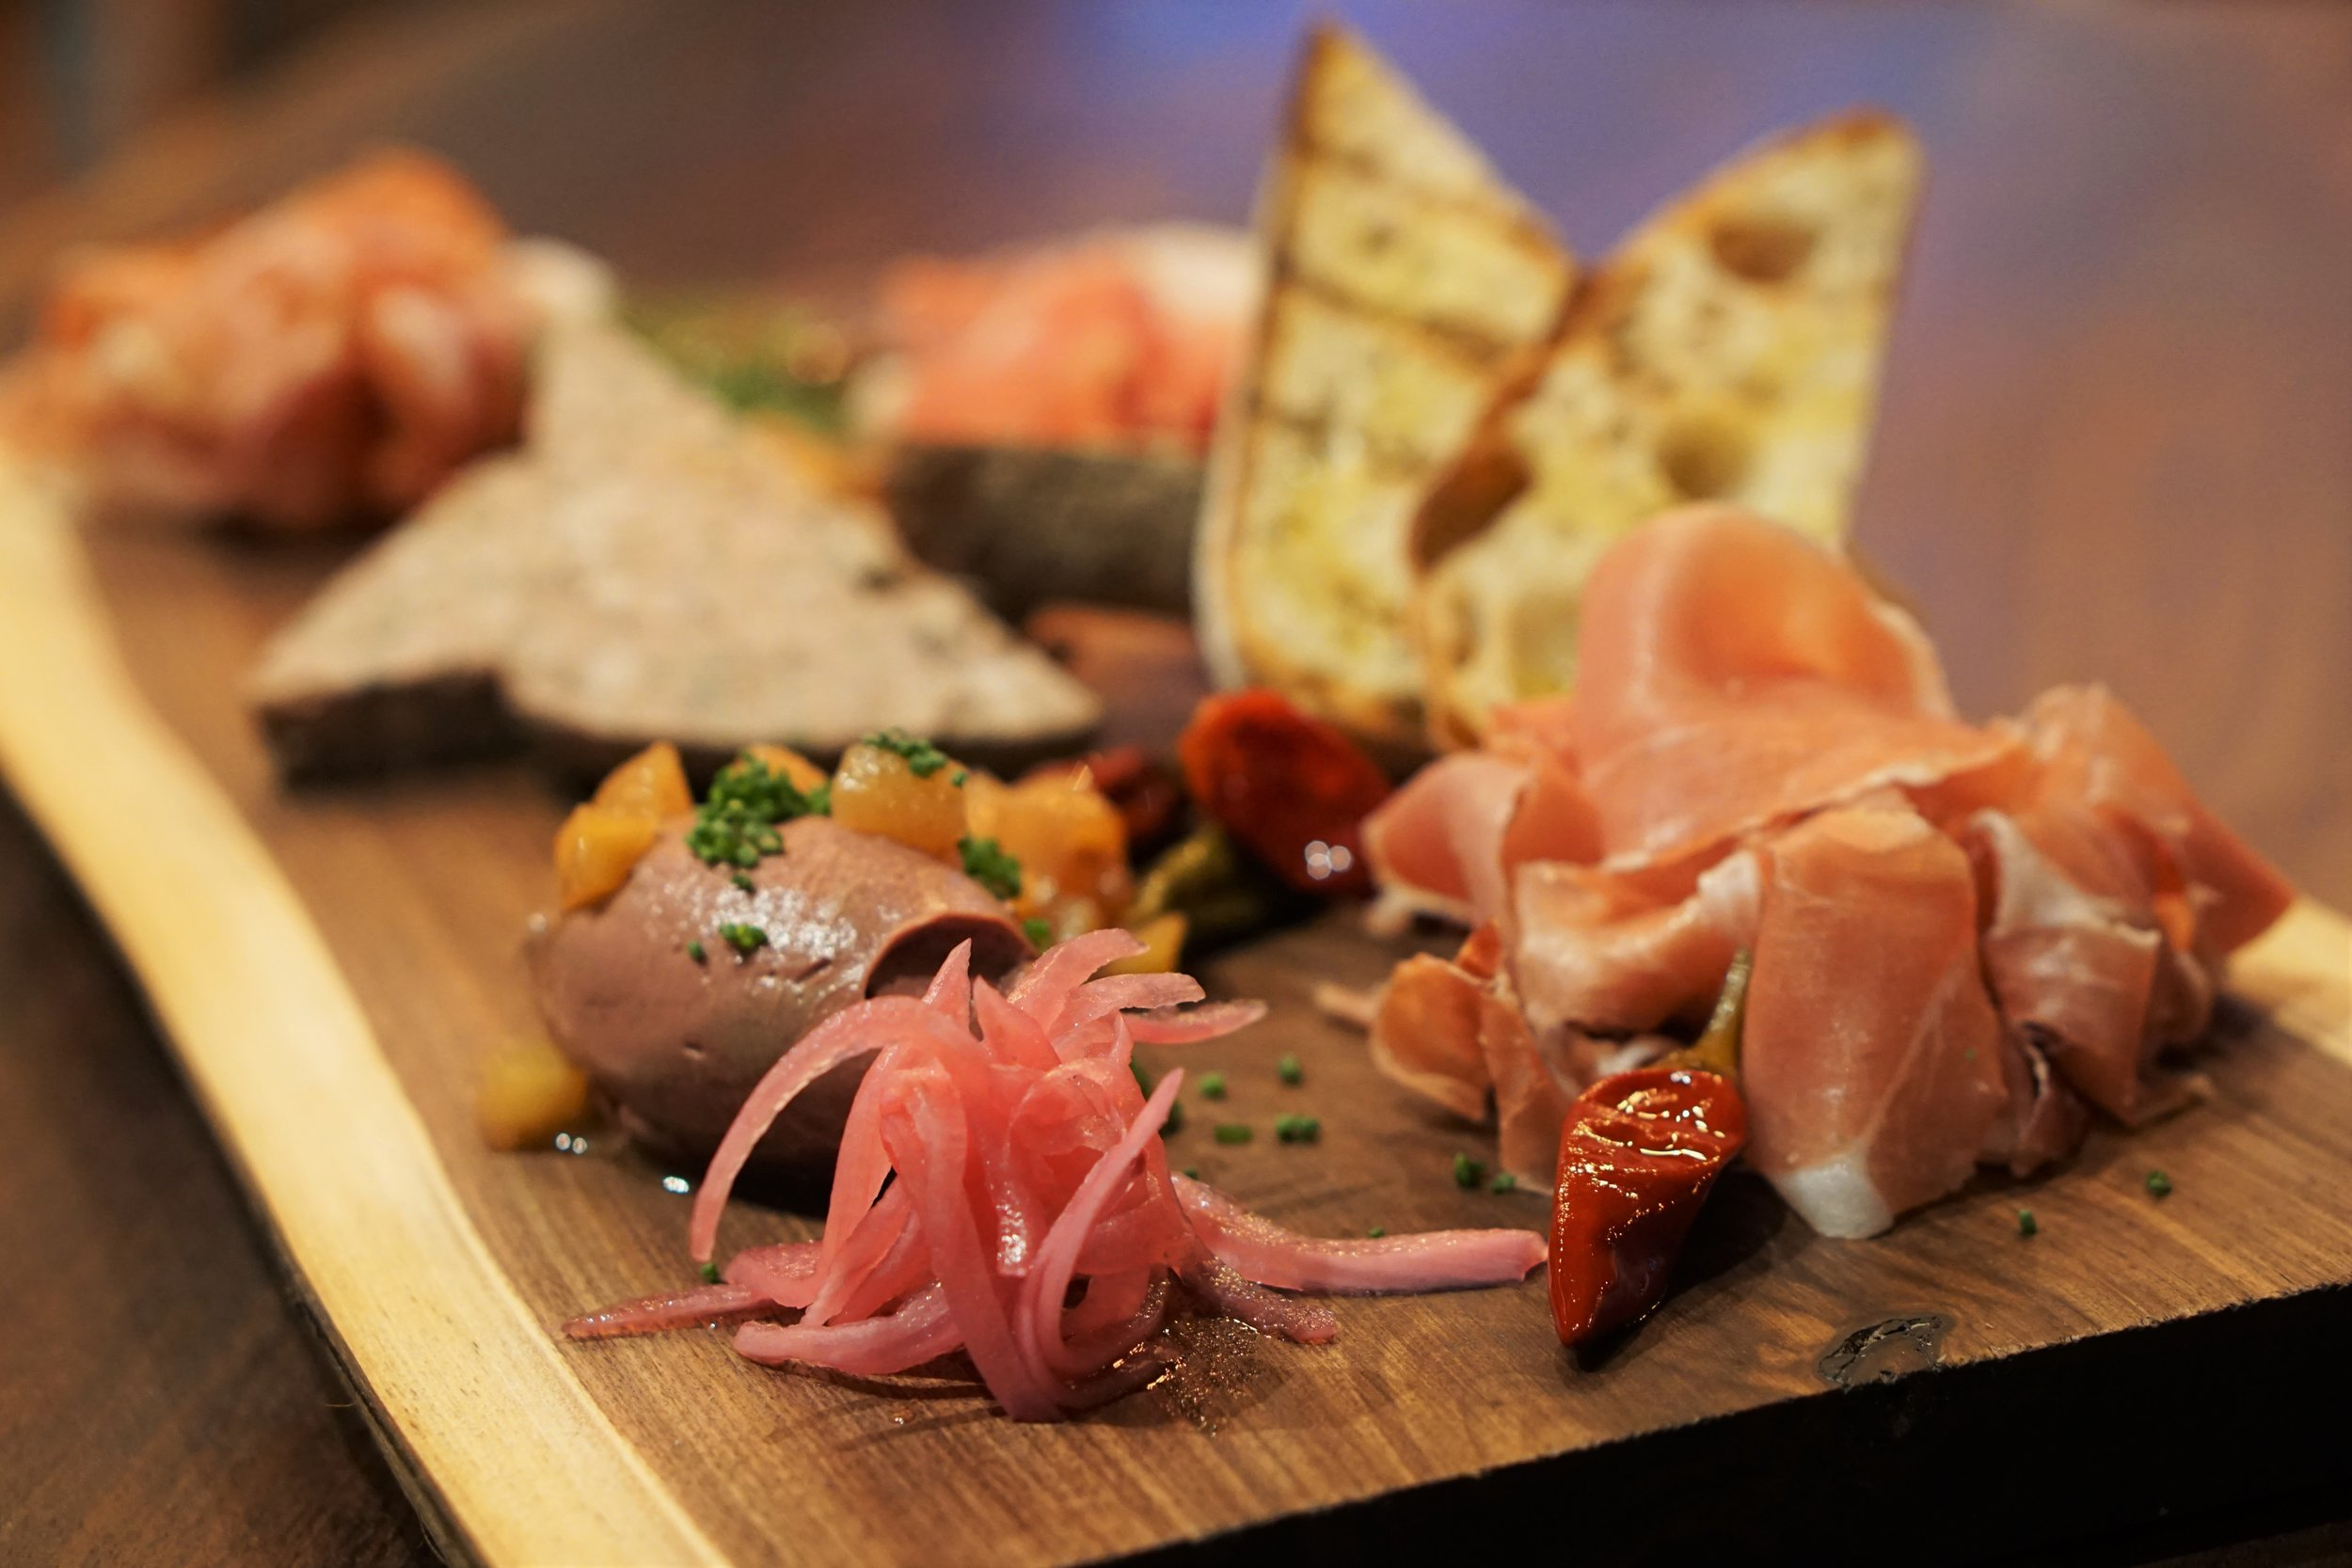 Cinder, Opening, Charcuterie